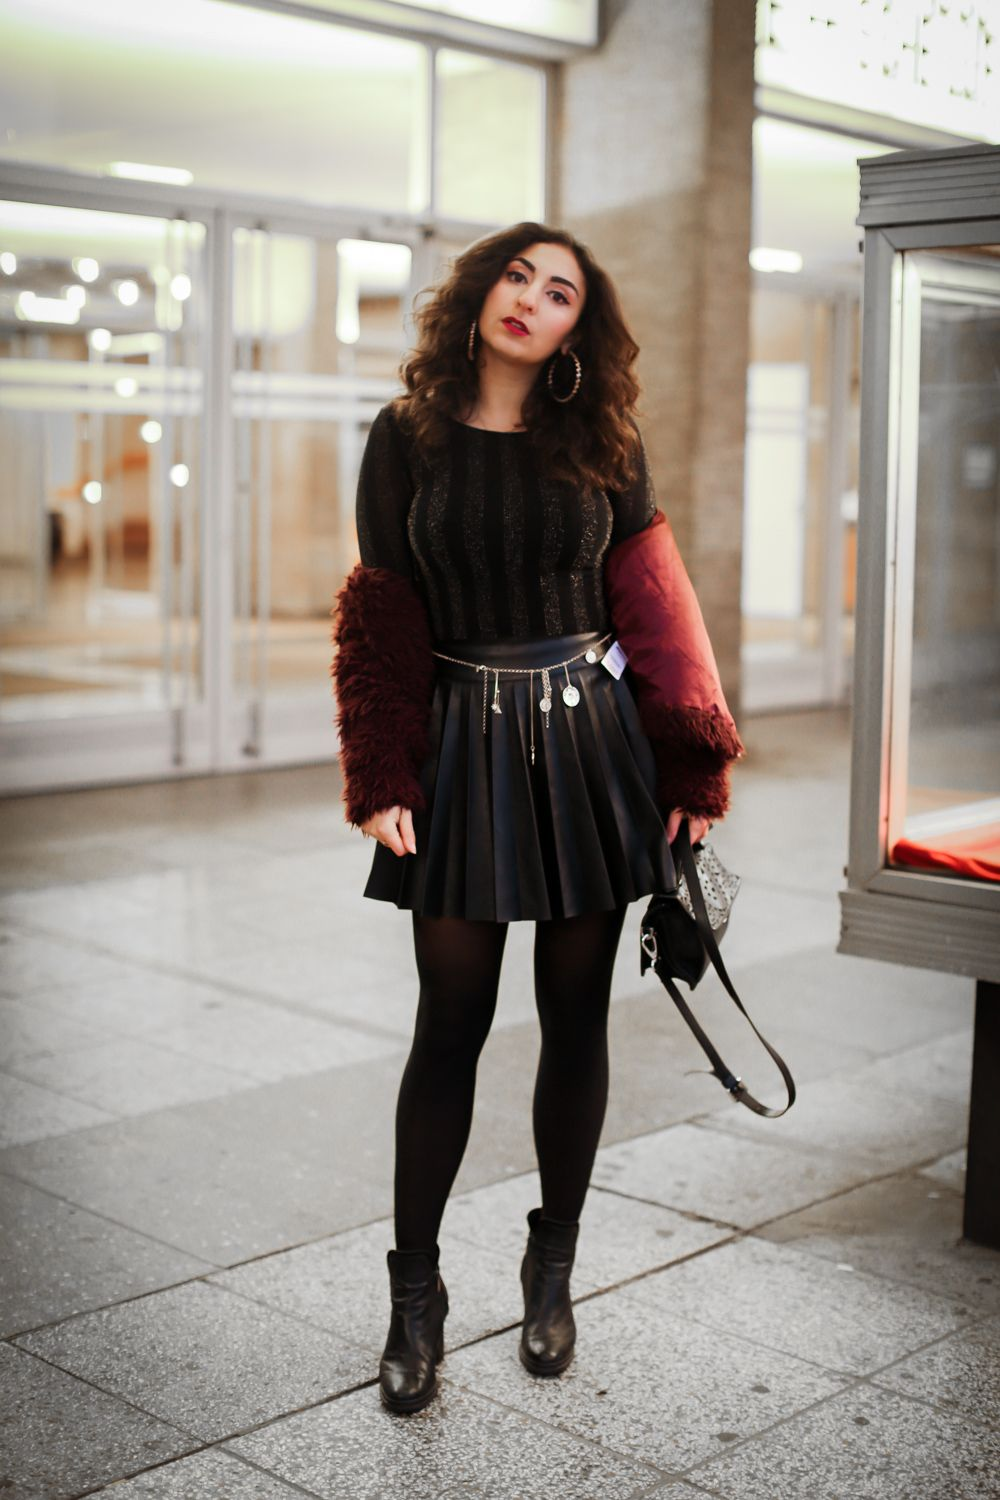 new years eve outfit - fashionblog berlin | schwarzes kleid